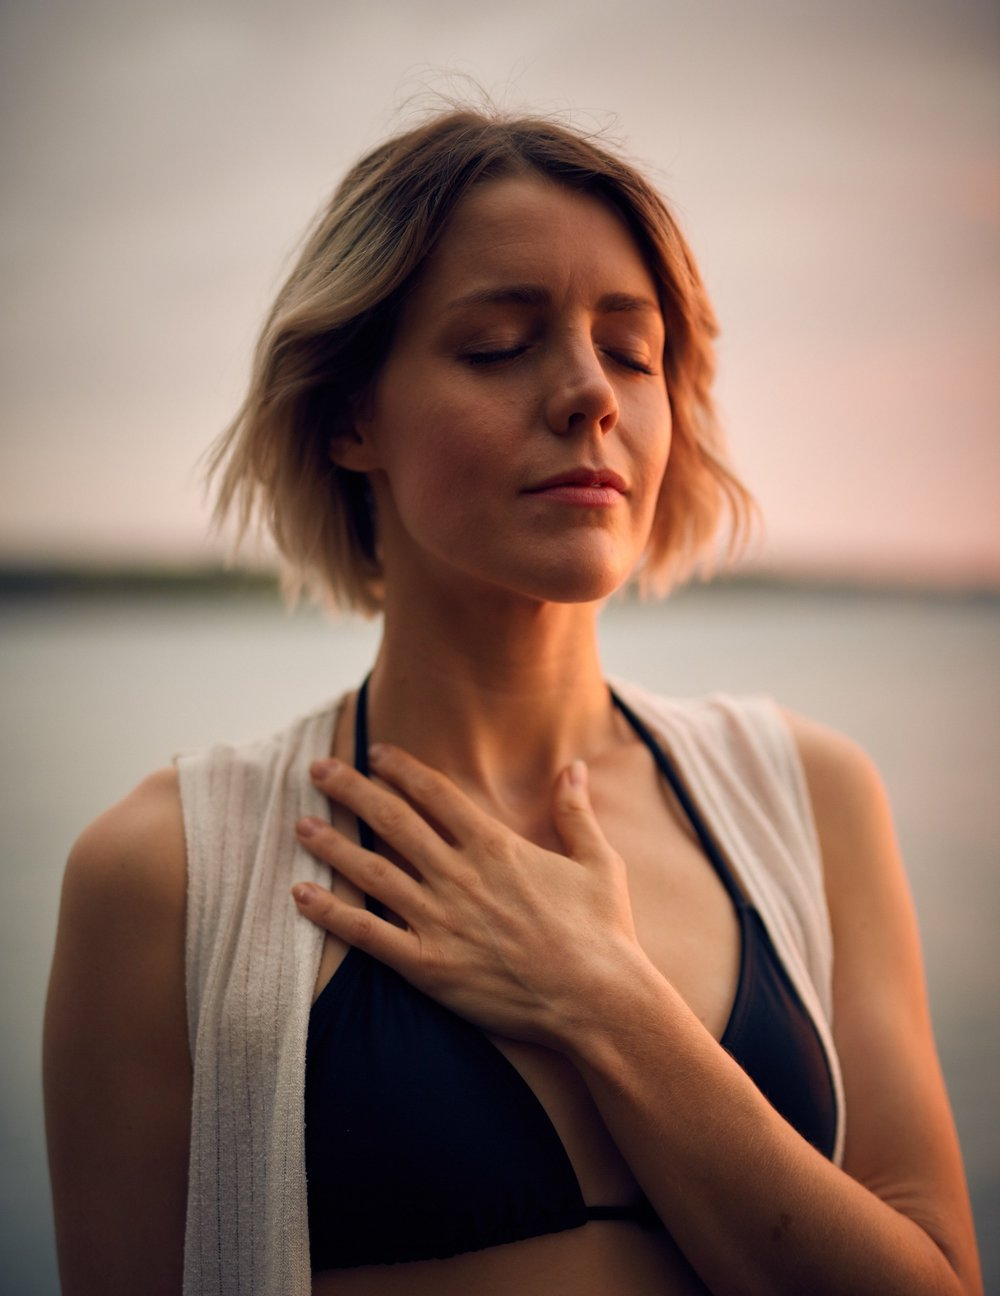 Serious Illness and Caregiver. Breath Tool. Woman with her Hand on her heart.